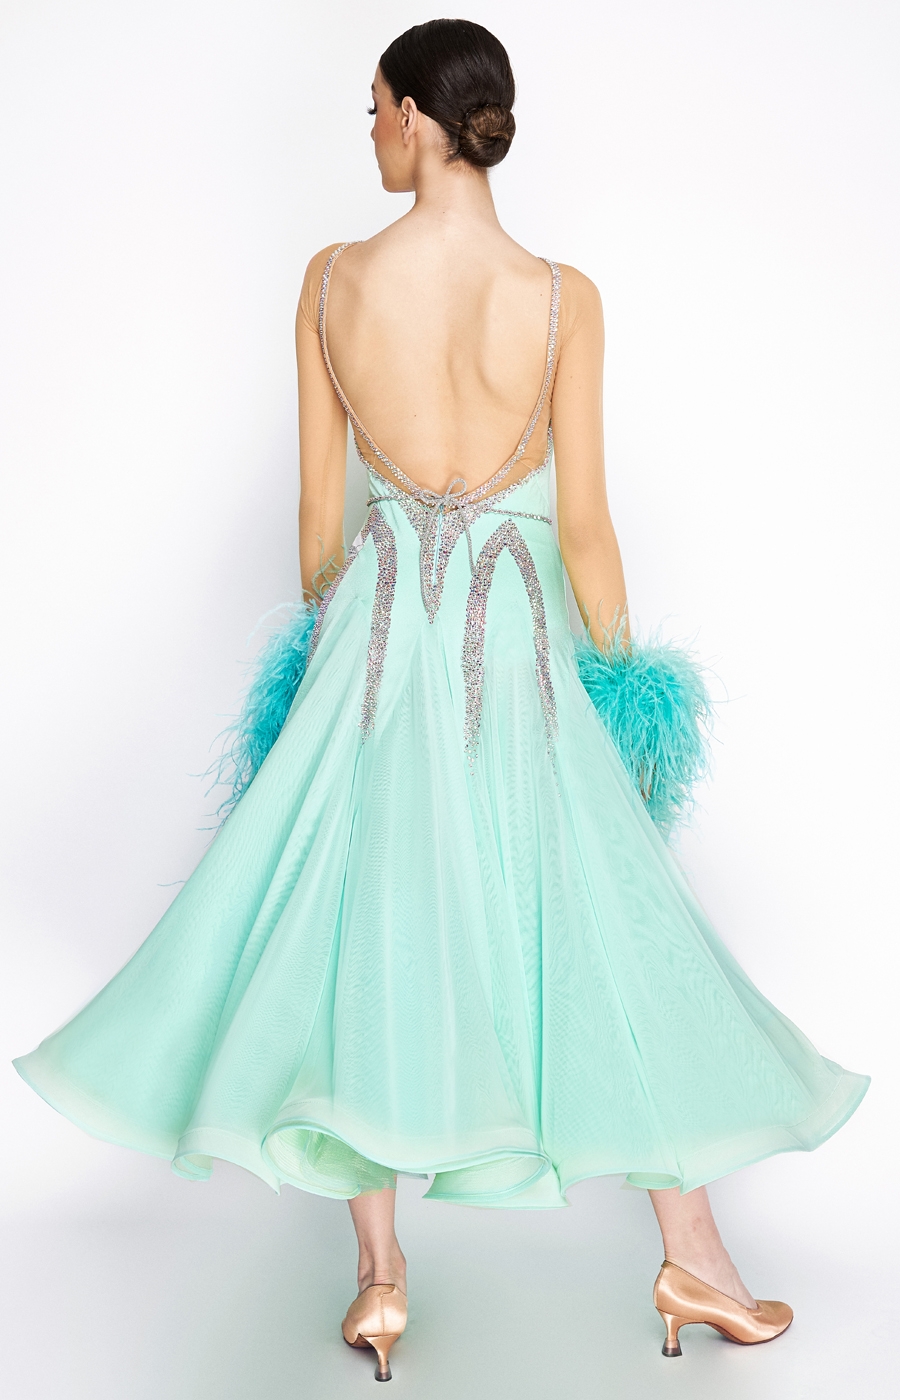 Ballroom dress Spearmint